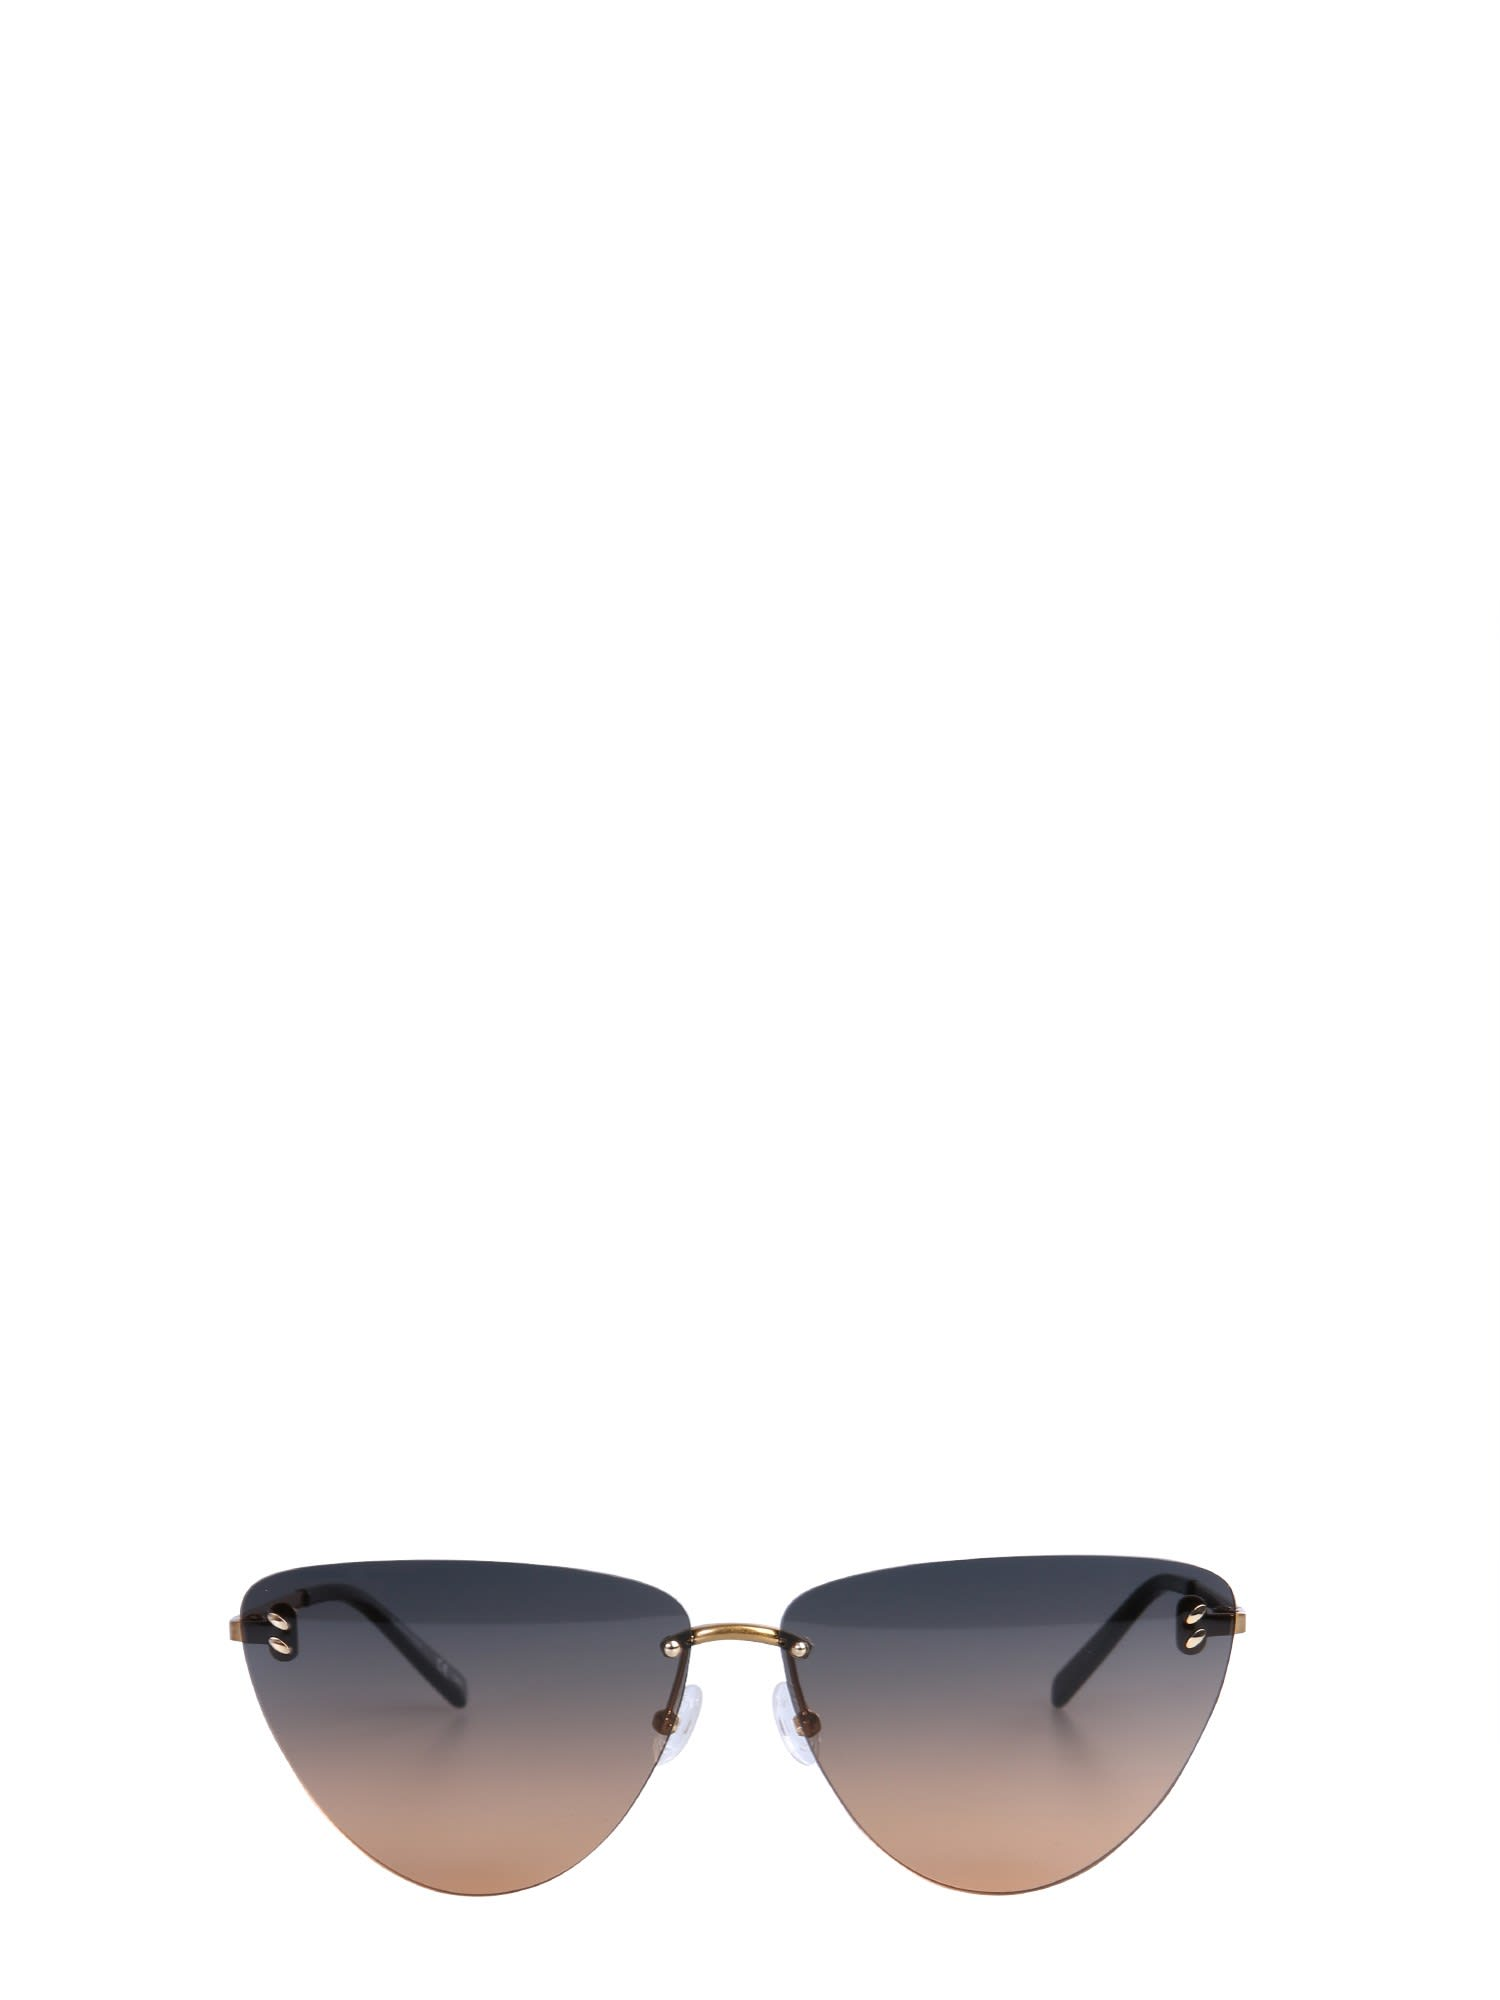 Stella McCartney Shaded Sunglasses